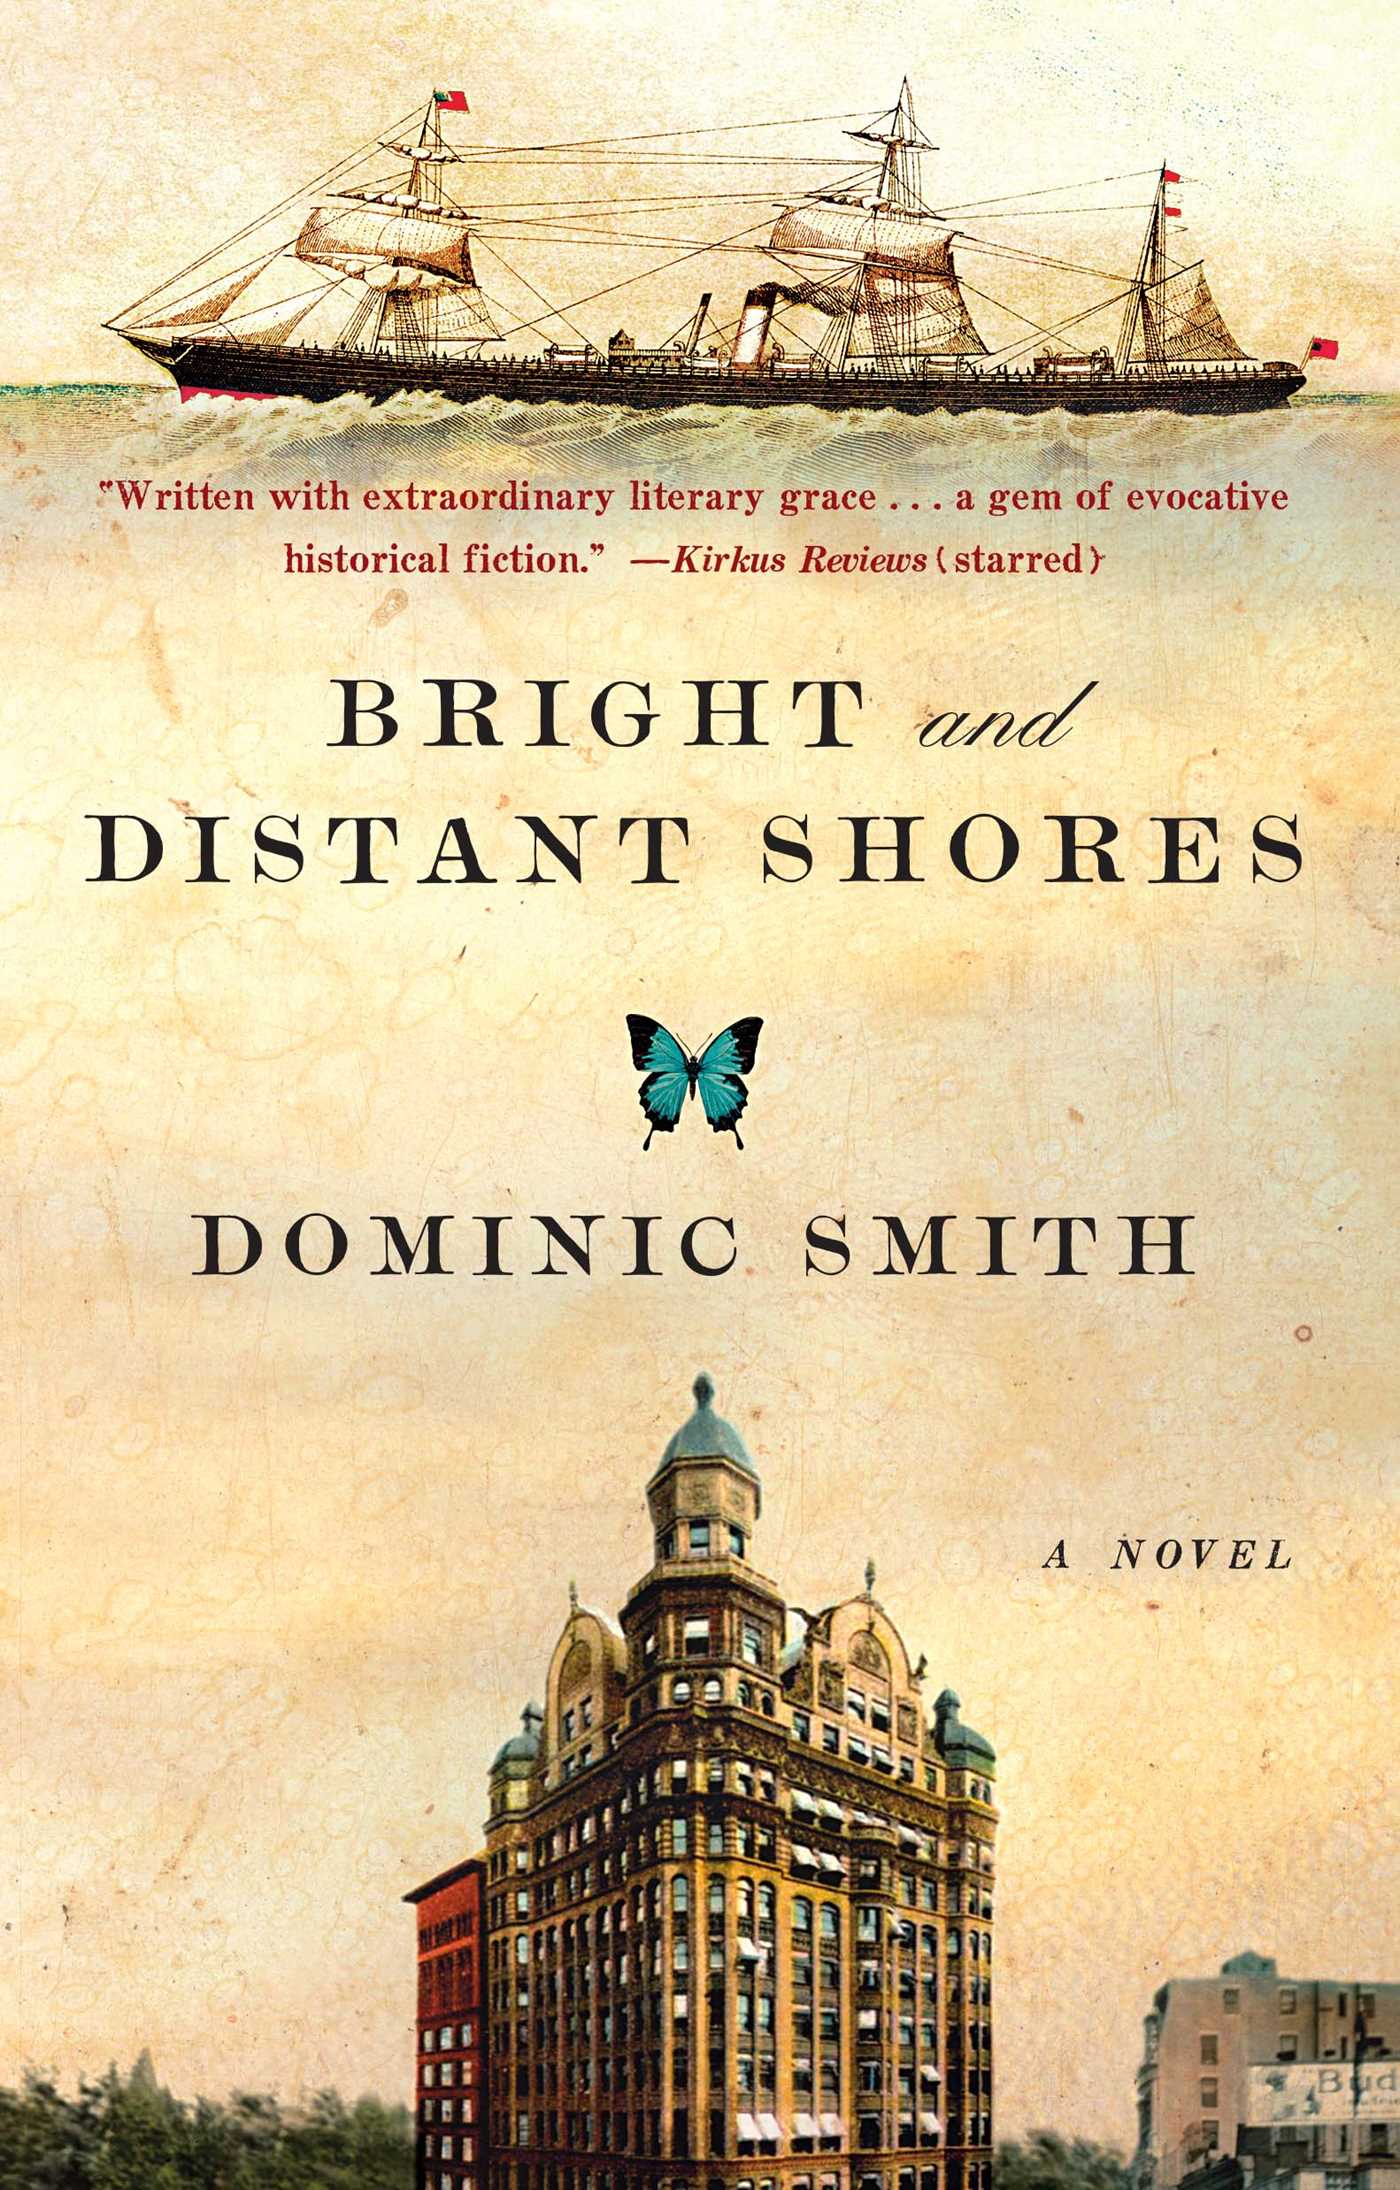 Bright-and-distant-shores-9781439198865_hr